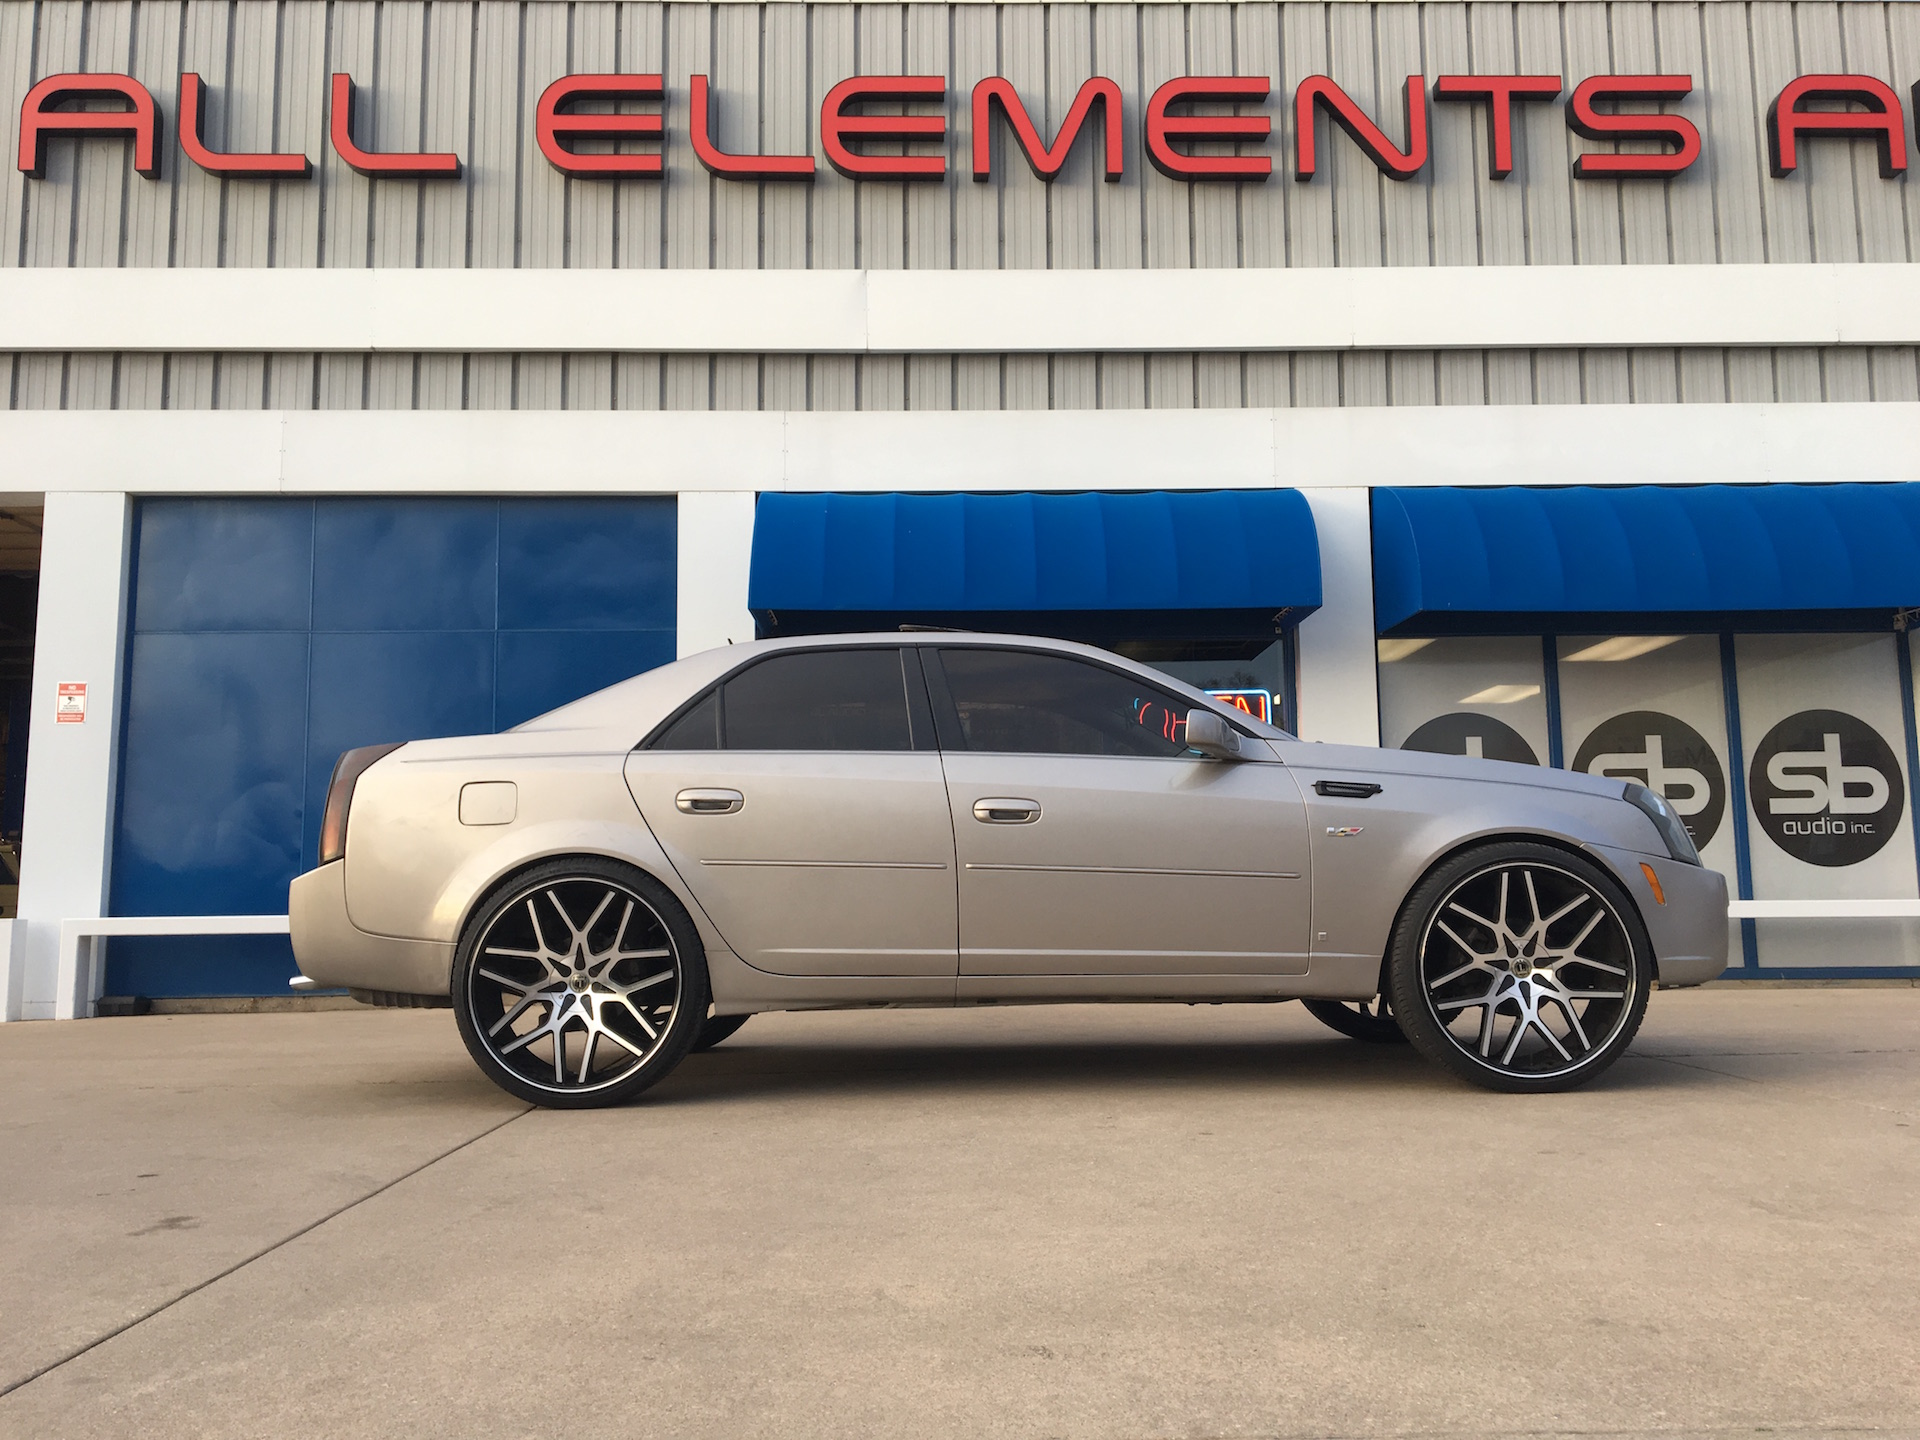 Custom Lift on Cadillac CTS to fit 24 inch wheels